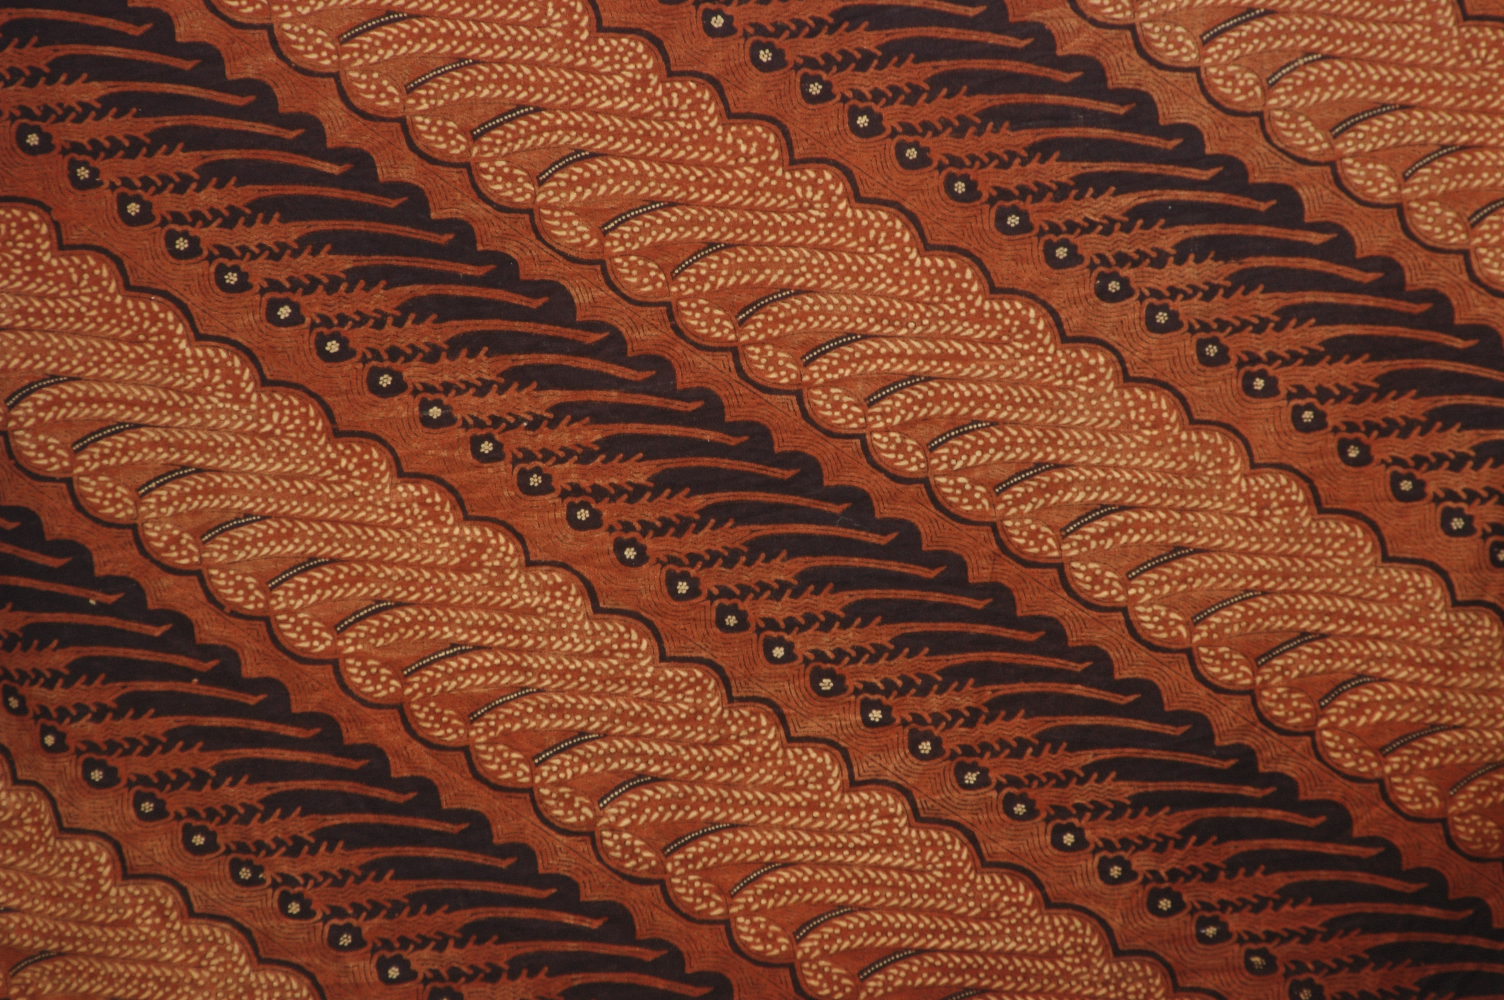 History of Indonesian Batik